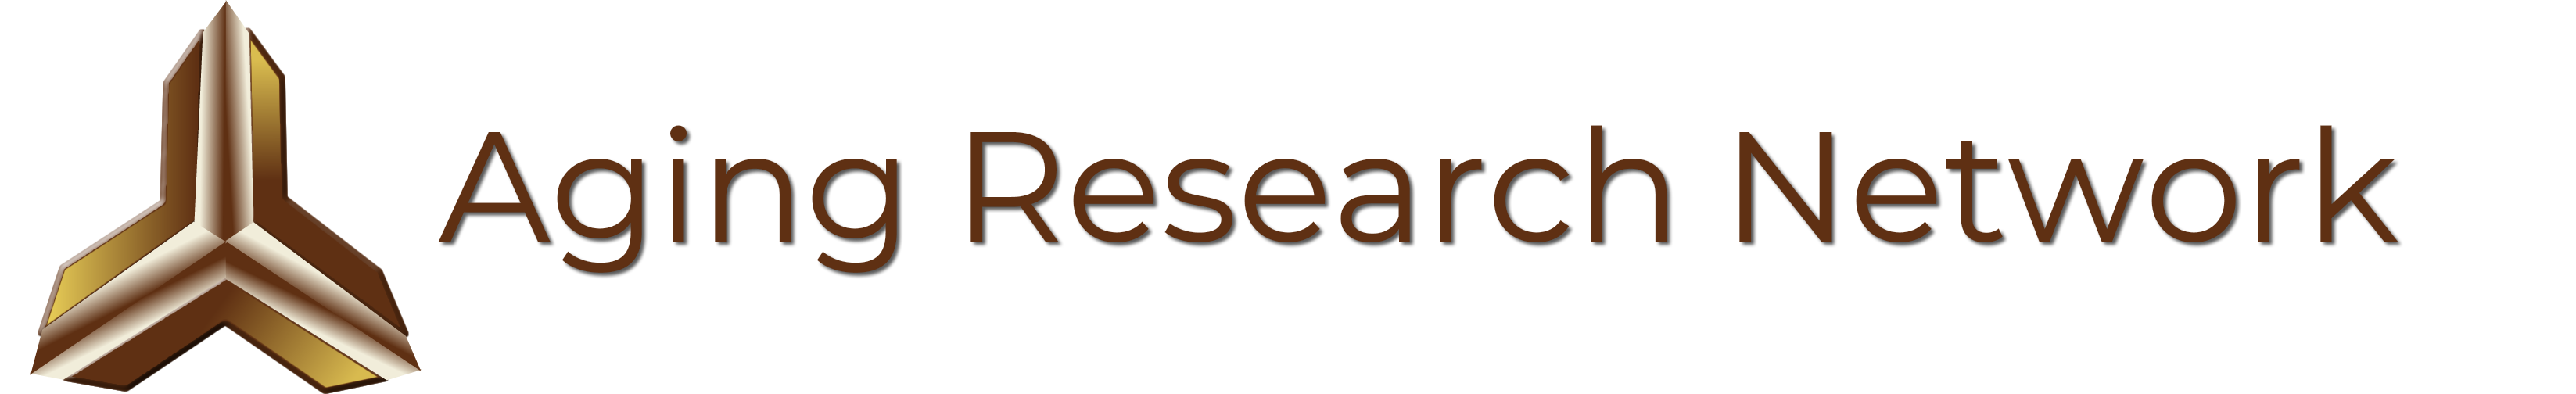 Aging Research Network